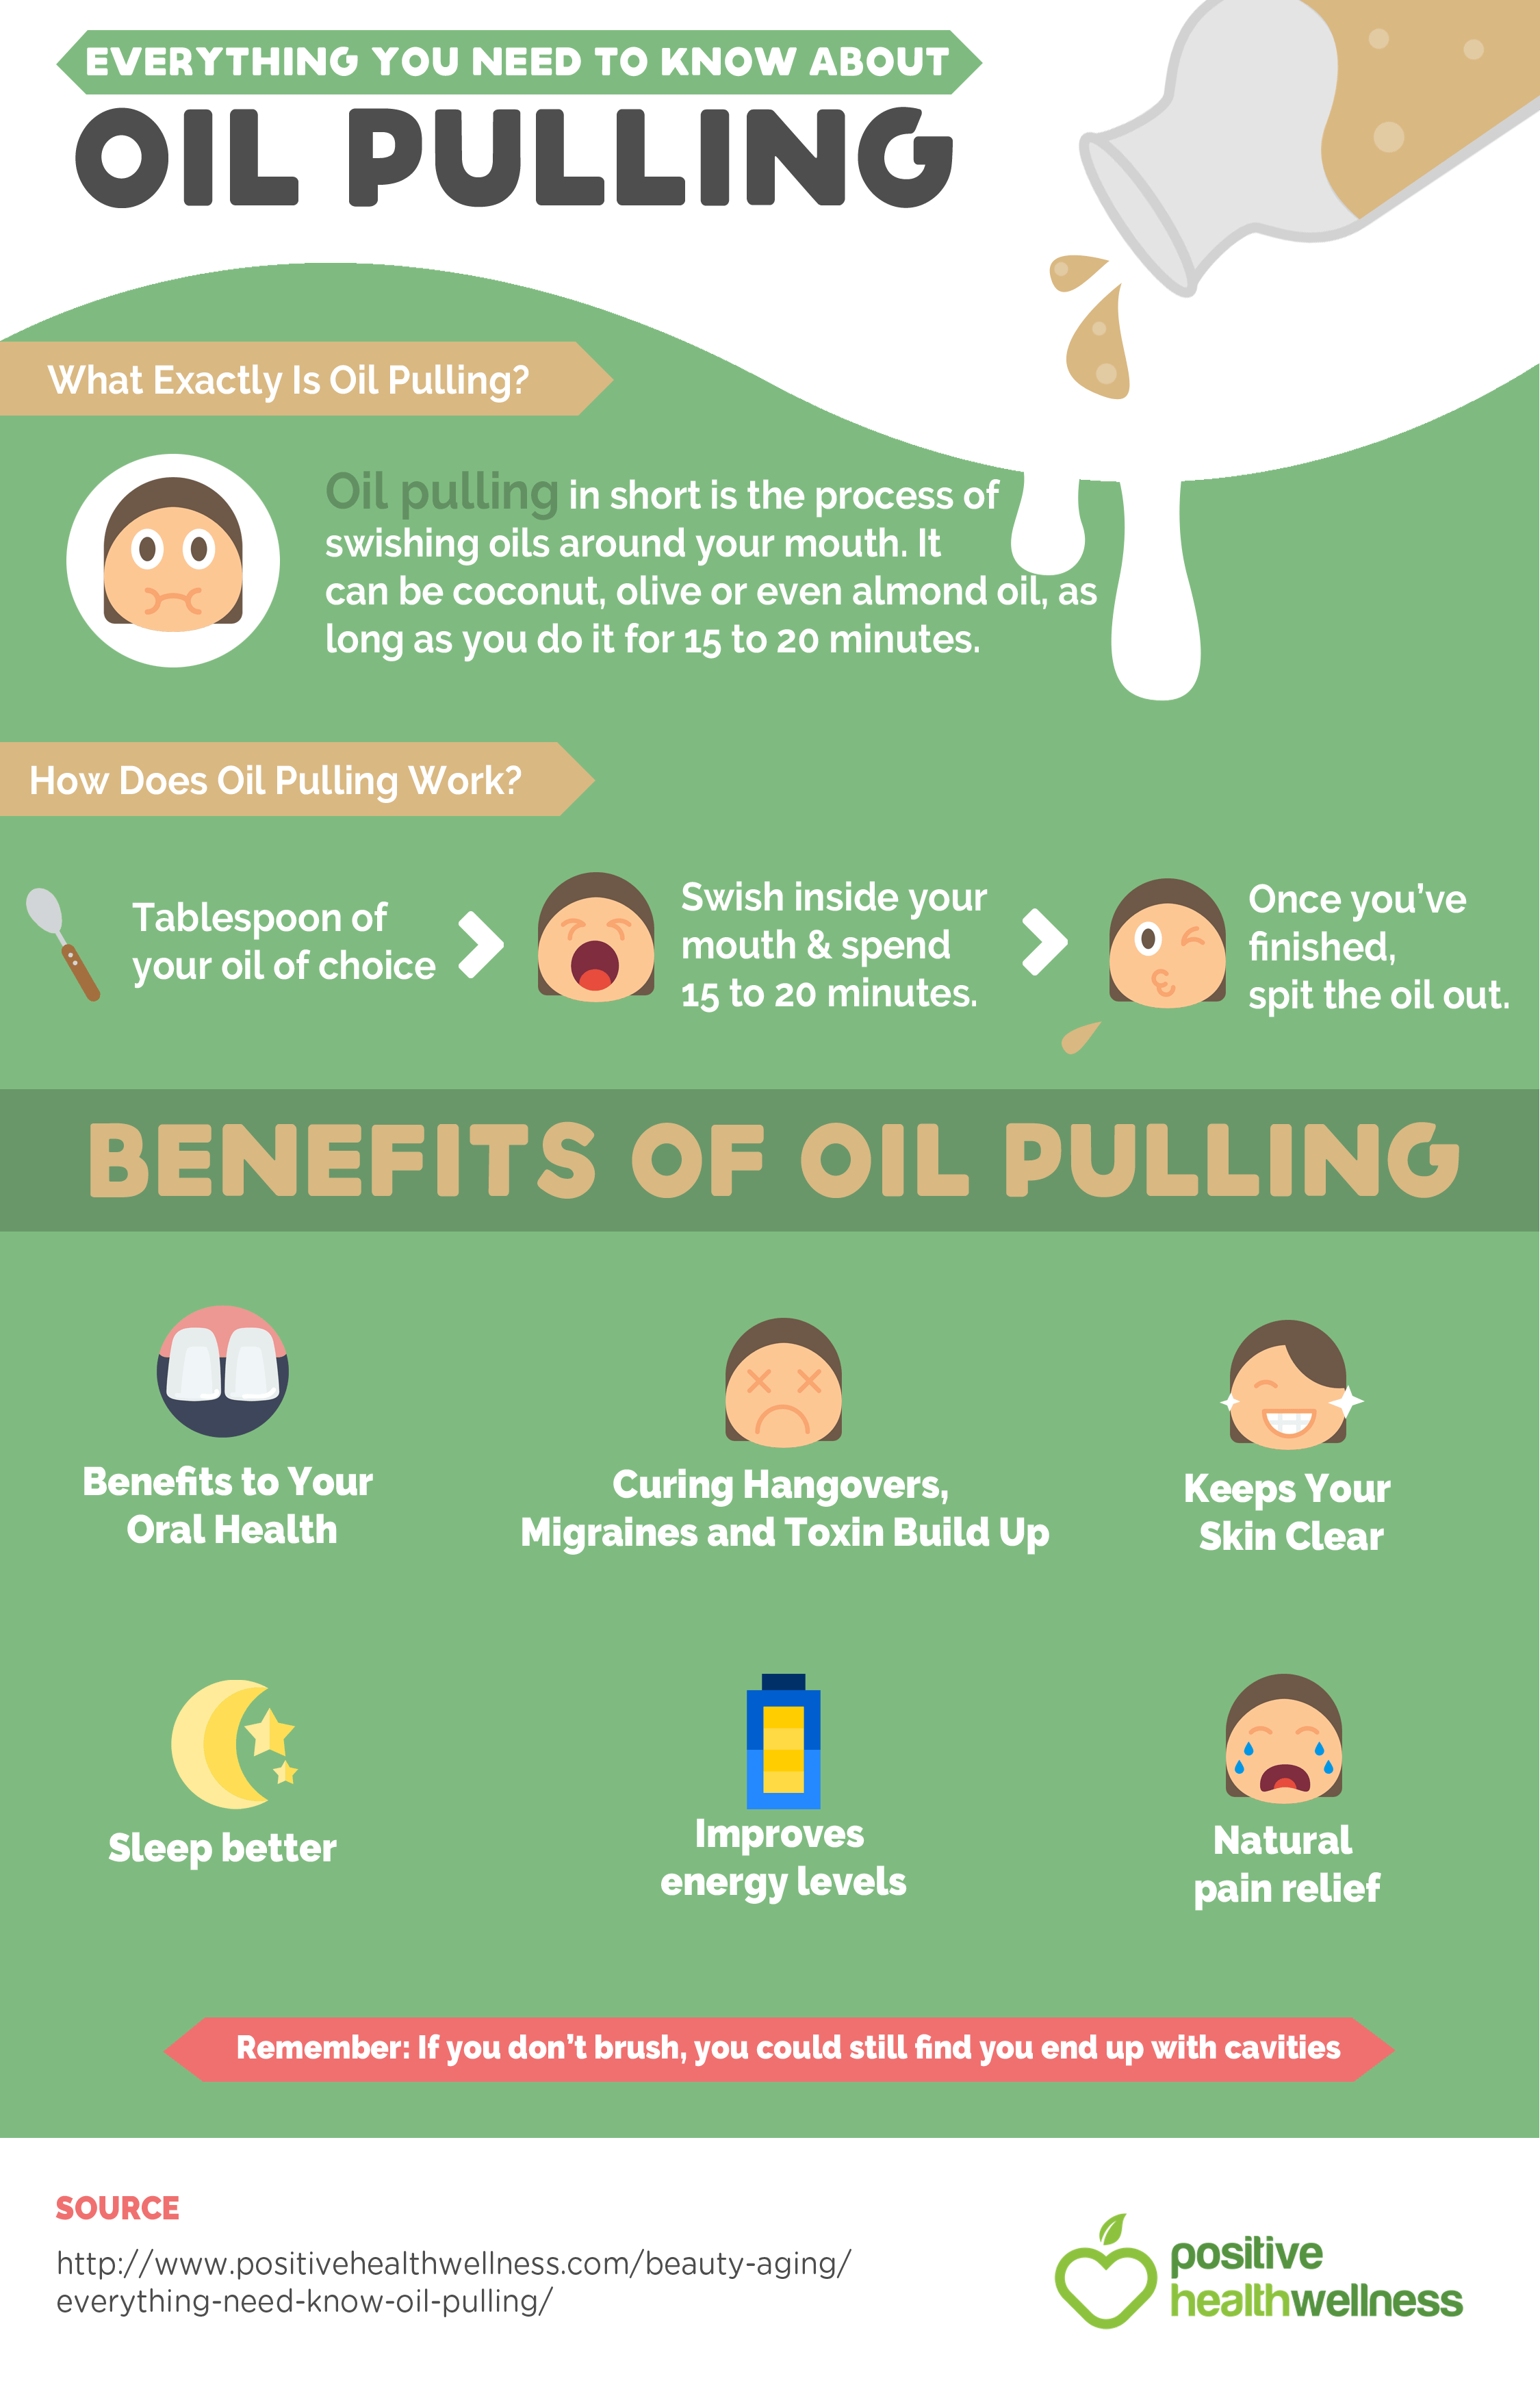 Do You Know You Can Use Oil To Improve Your Oral Health?